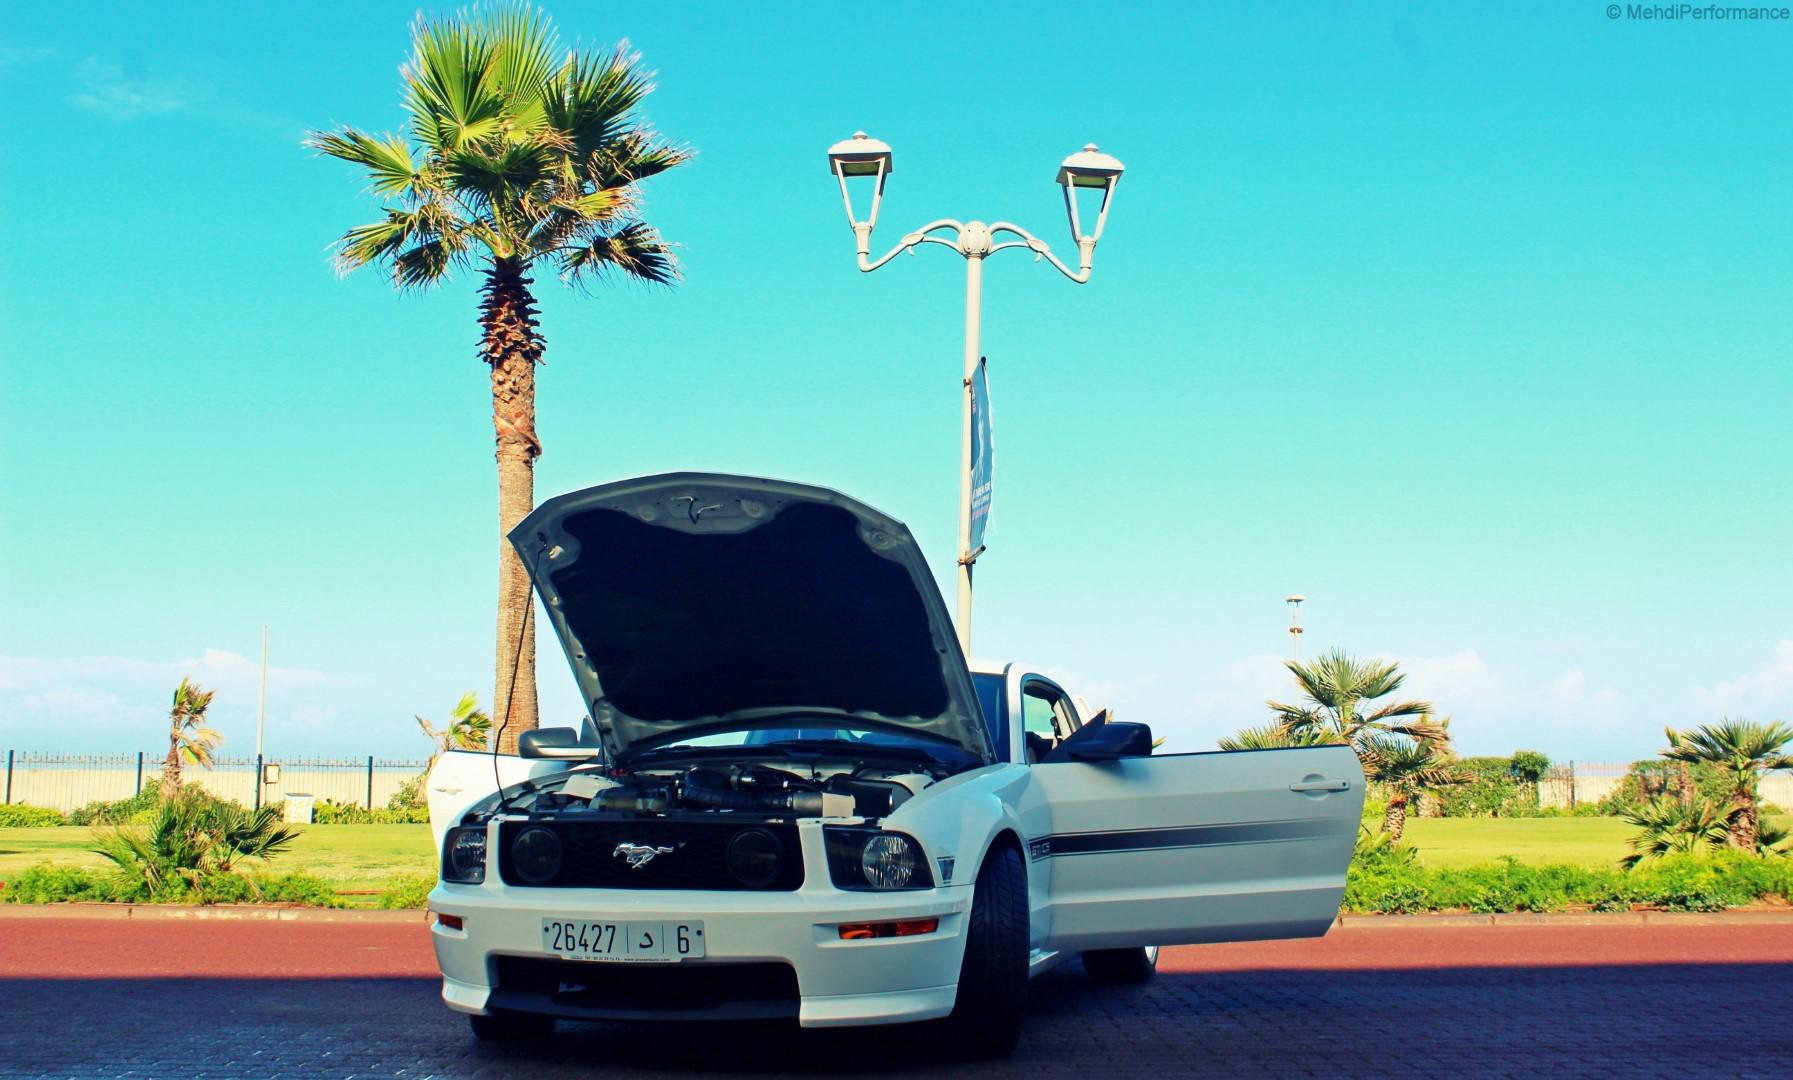 serie-speciale-au-maroc-ford-mustang-gt-v8-4-6l-california-special-manuelle-458-15.jpg